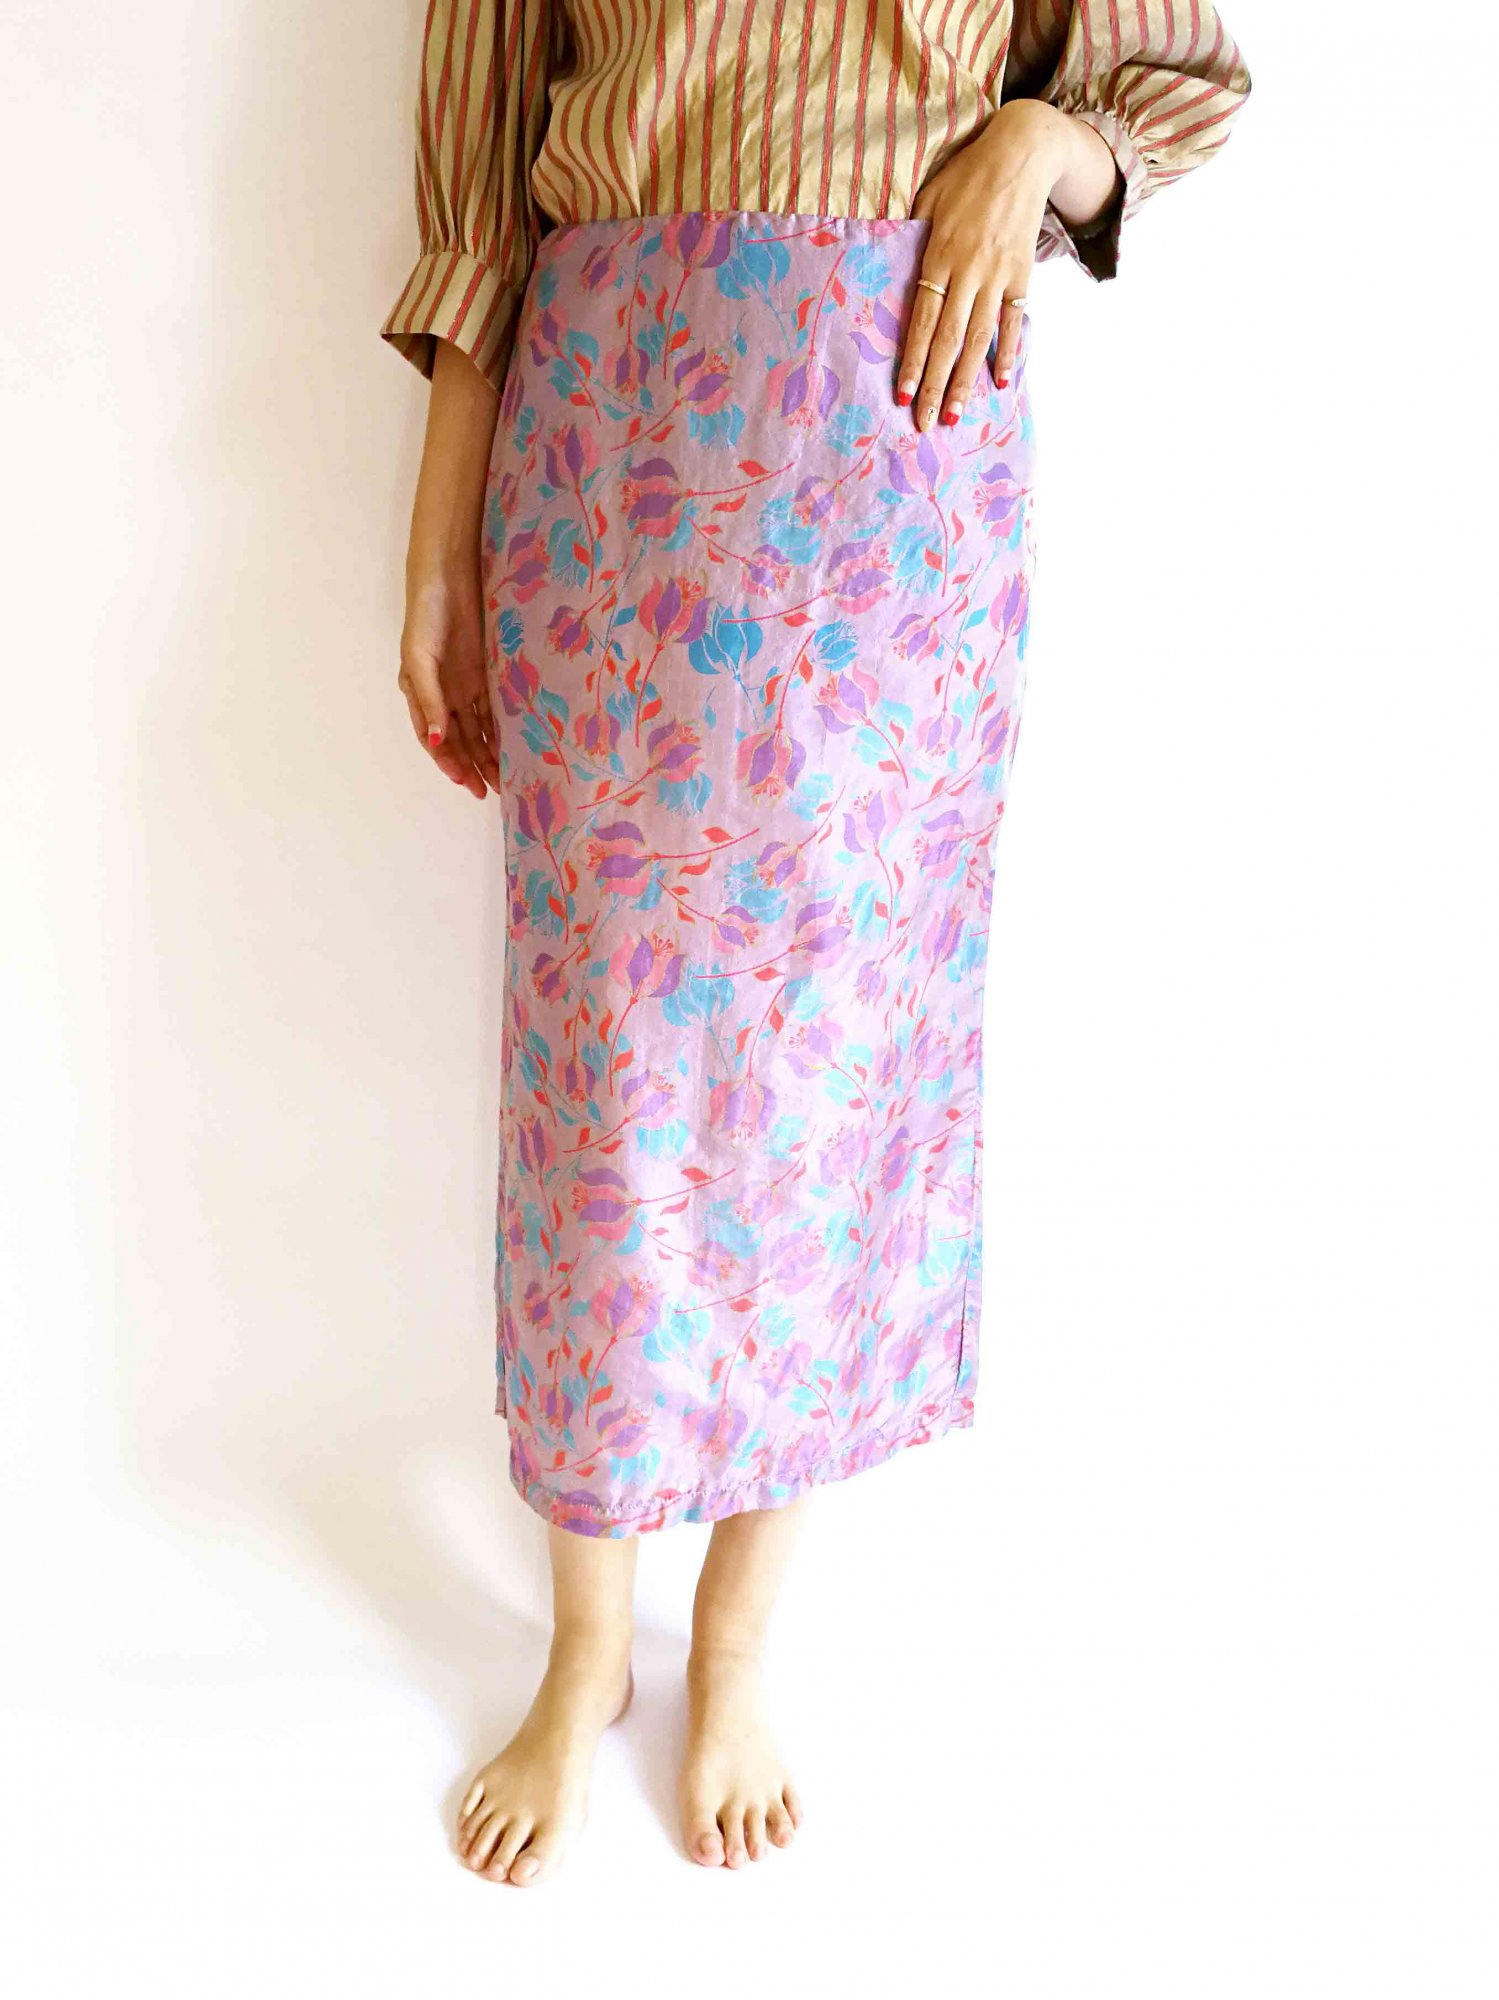 Pencil Skirt / purple flower